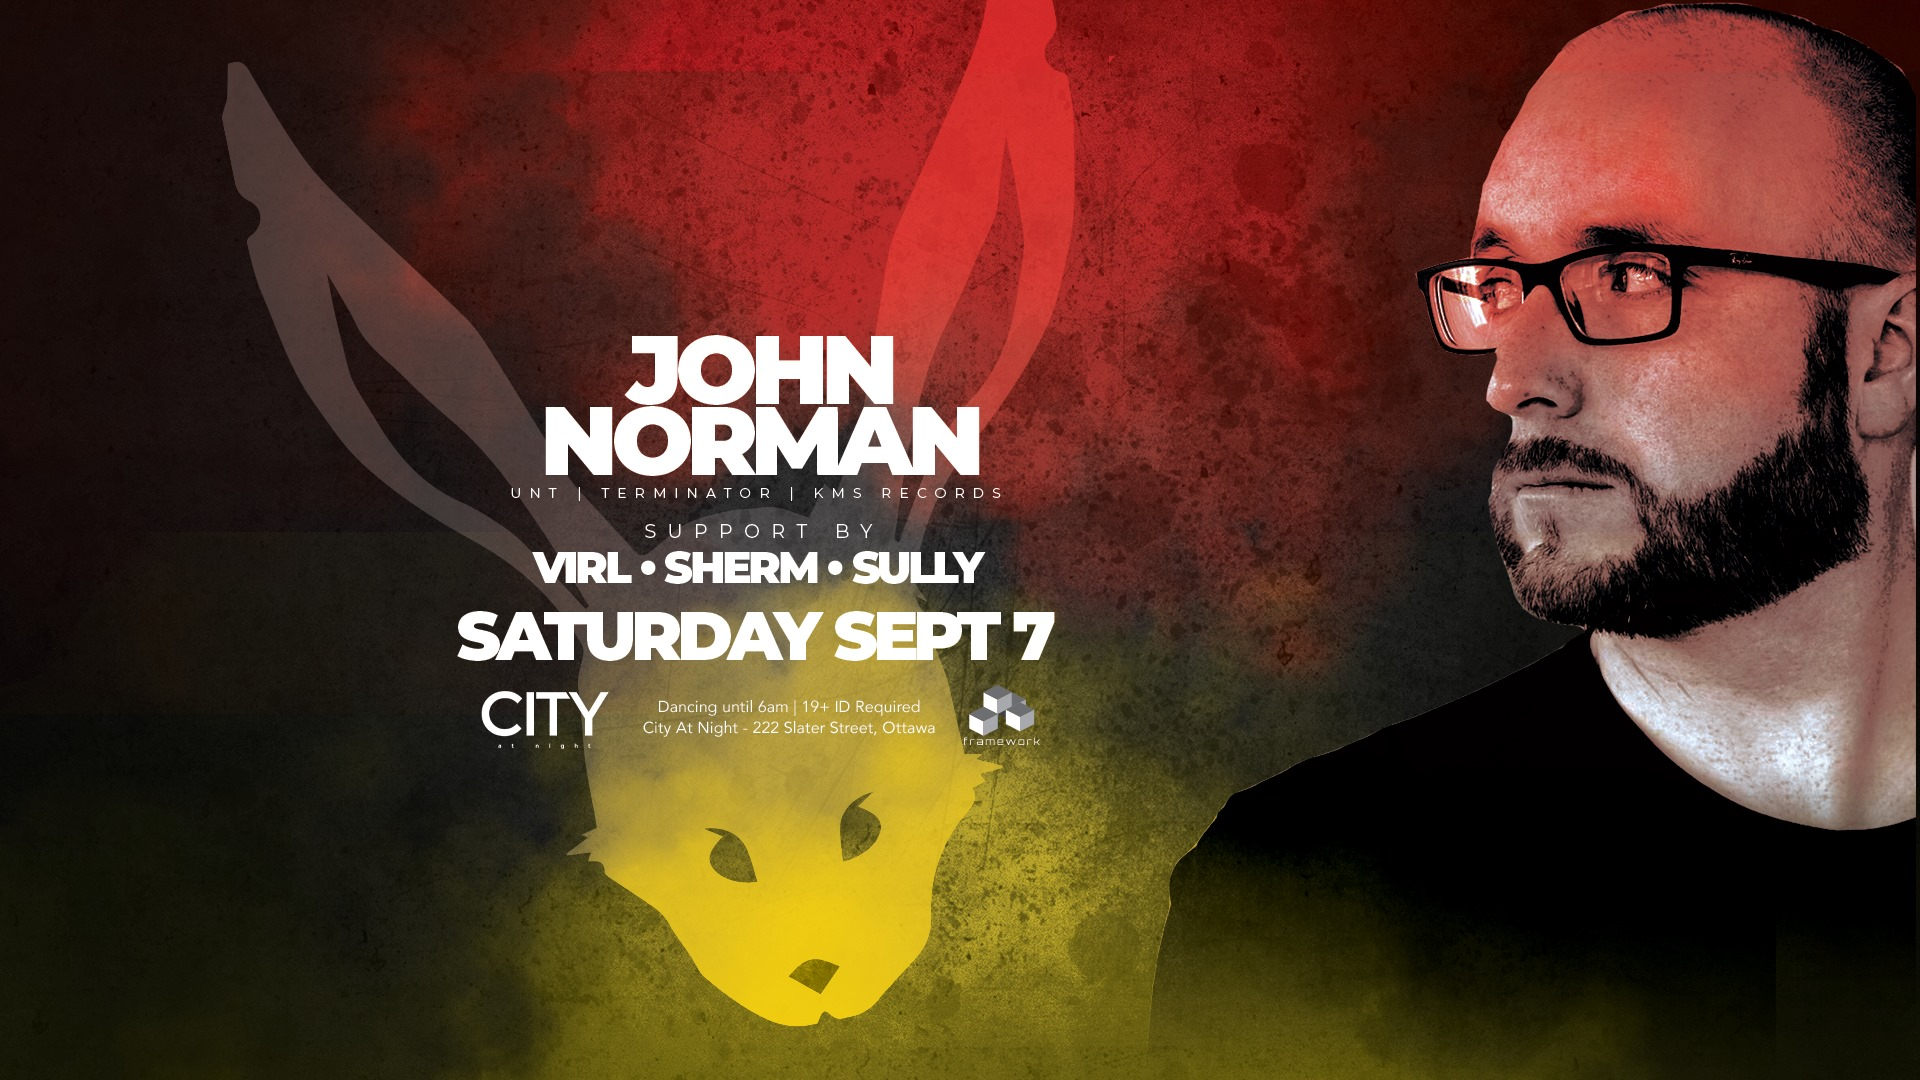 White Rabbit: John Norman - All Night Dancing 11pm to 6am